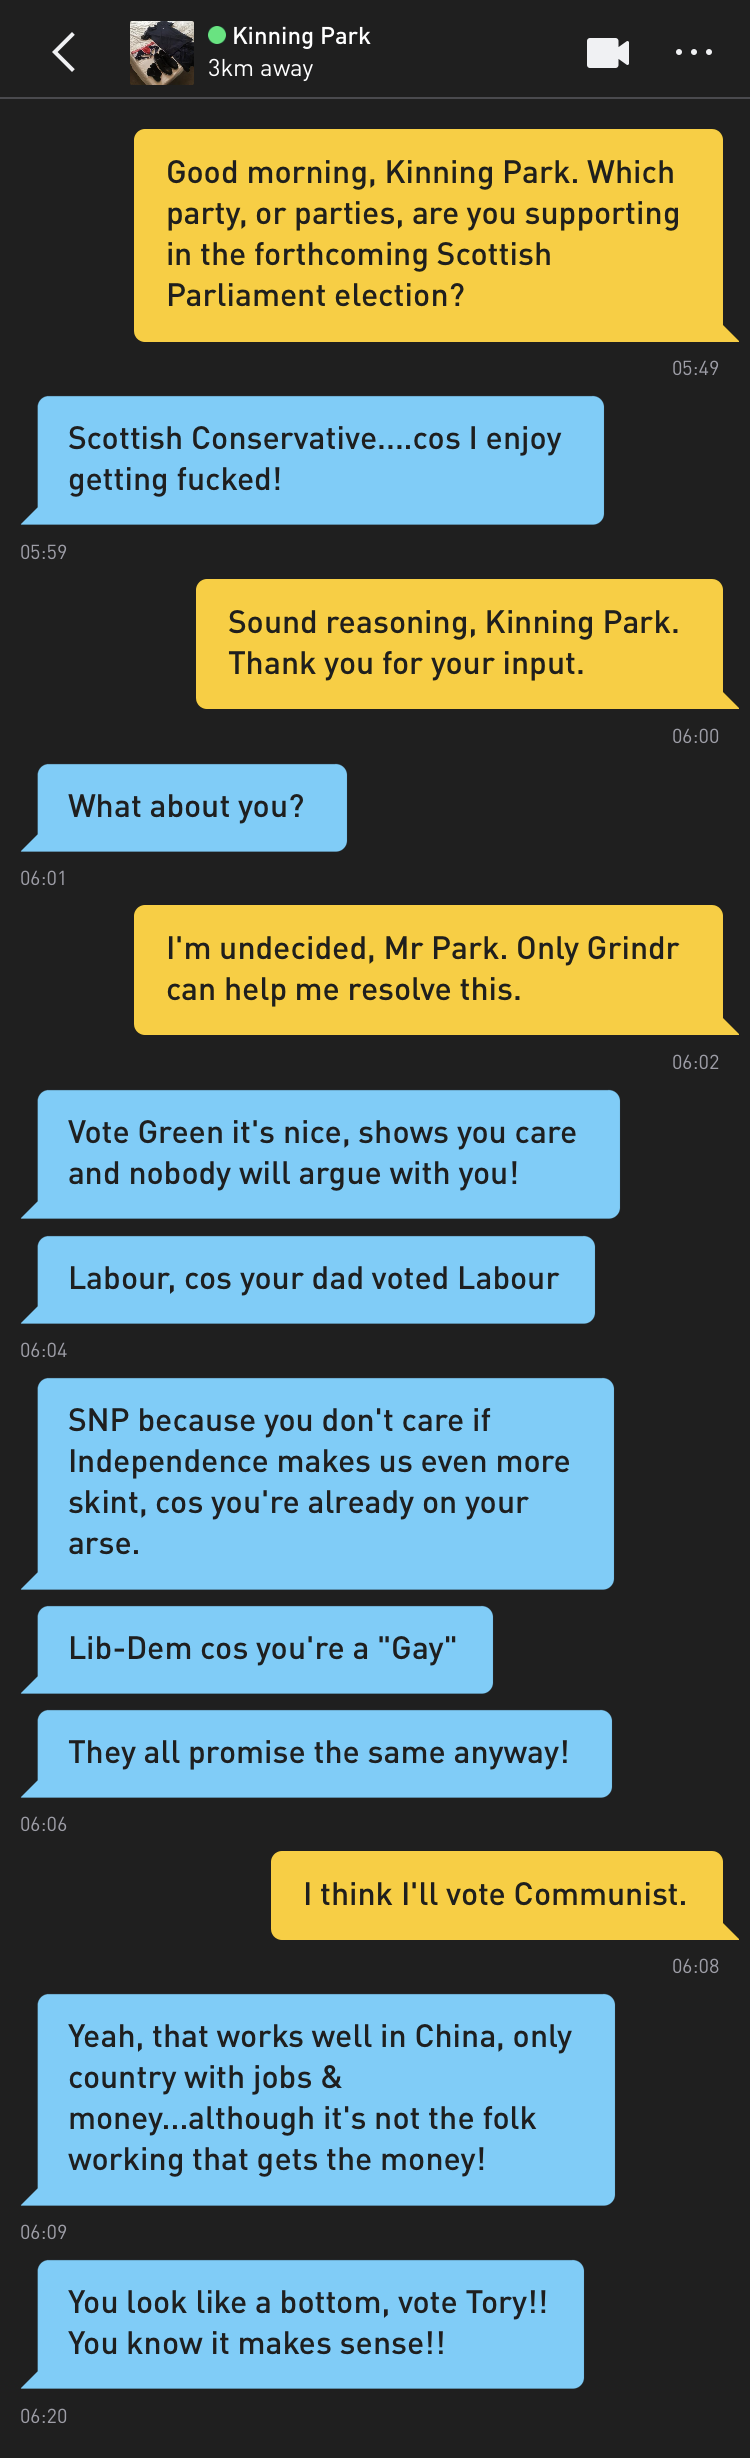 "Me: Good morning, Kinning Park. Which party, or parties, are you supporting in the forthcoming Scottish Parliament election? Kinning Park: Scottish Conservative....cos I enjoy getting fucked! Me: Sound reasoning, Kinning Park. Thank you for your input. Kinning Park: What about you? Me: I'm undecided, Mr Park. Only Grindr can help me resolve this. Kinning Park: Vote Green it's nice, shows you care and nobody will argue with you! Kinning Park: Labour,cos your dad voted Labour Kinning Park: SNP because you don't care if Independence makes us even more skint, cos you're already on your arse. Kinning Park: Lib-Dem cos you're a ""Gay"" Kinning Park: They all promise the same anyway! Me: I think I'll vote Communist. Kinning Park: Yeah, that works well in China, only country with jobs & money...although it's not the folk working that gets the money! Kinning Park: You look like a bottom, vote Tory!! You know it makes sense!!"